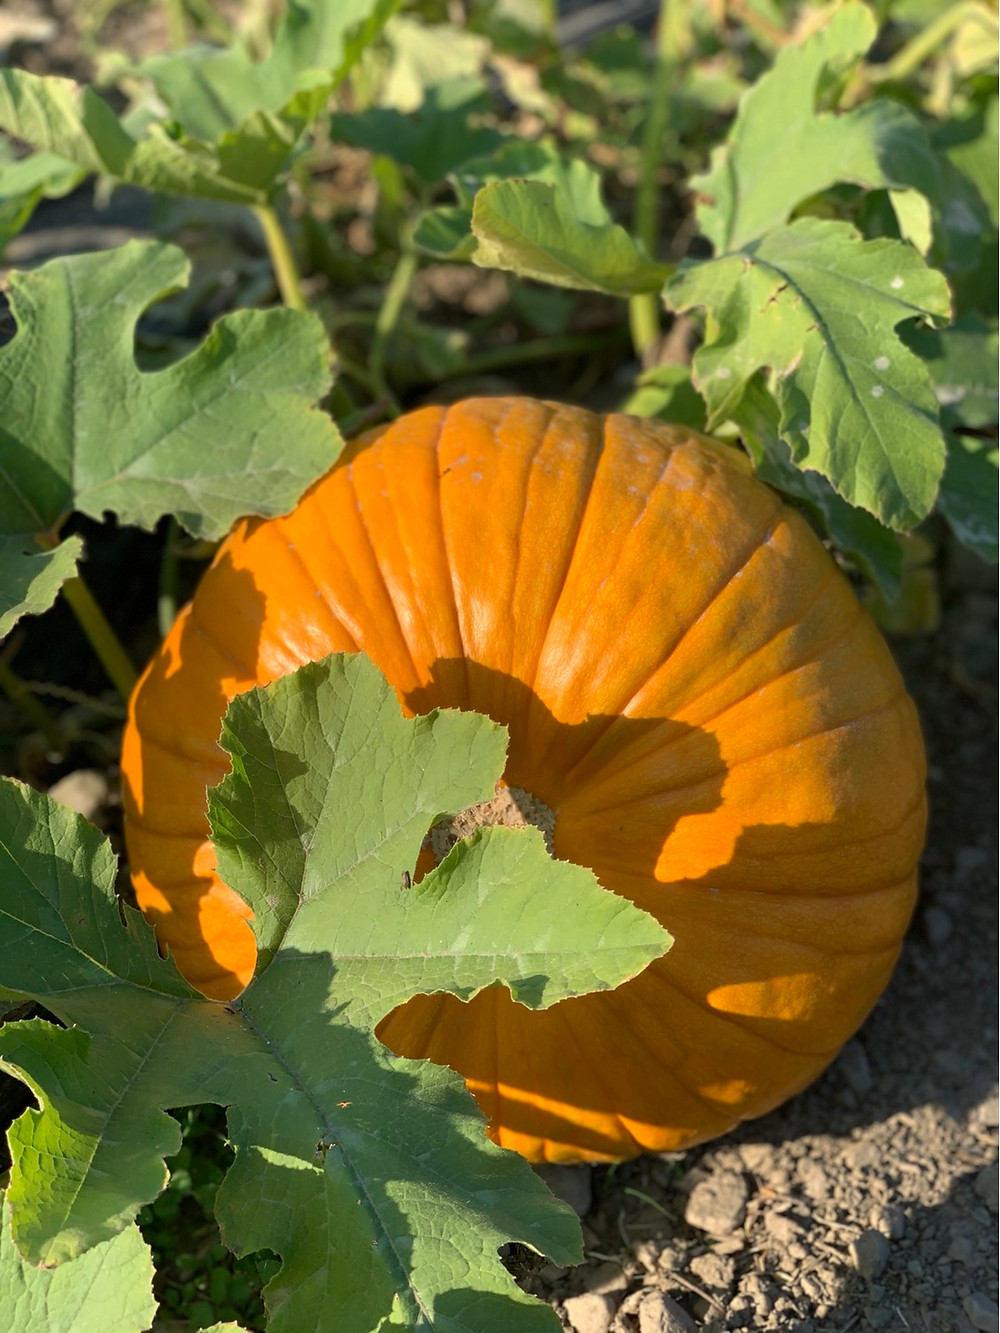 Pumpkin growing in the garden